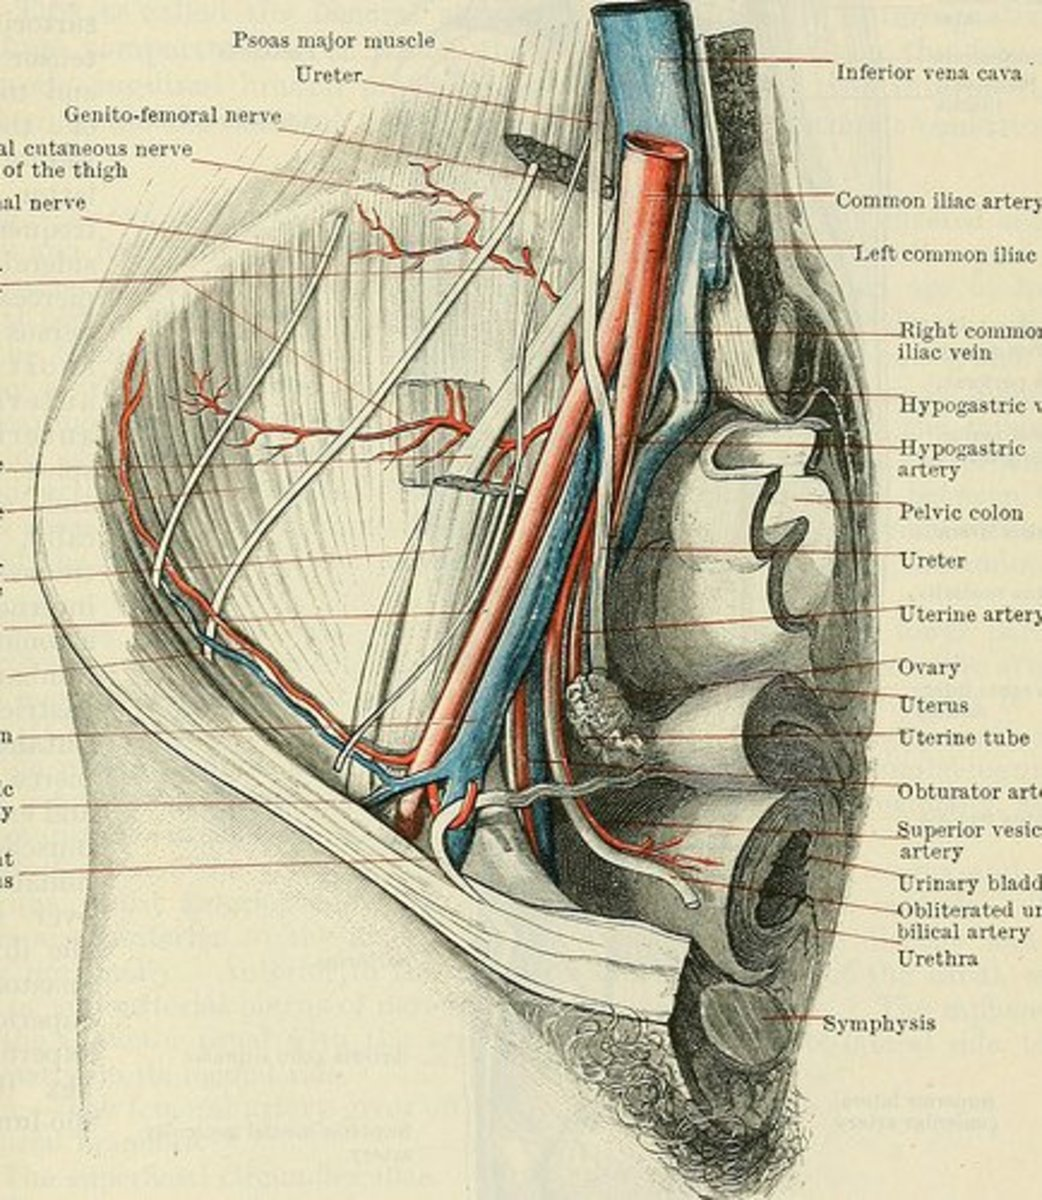 The hip and groin regions are very complex. As you can see from this diagram of the right hip, there are many blood vessels and nerves running through the area.